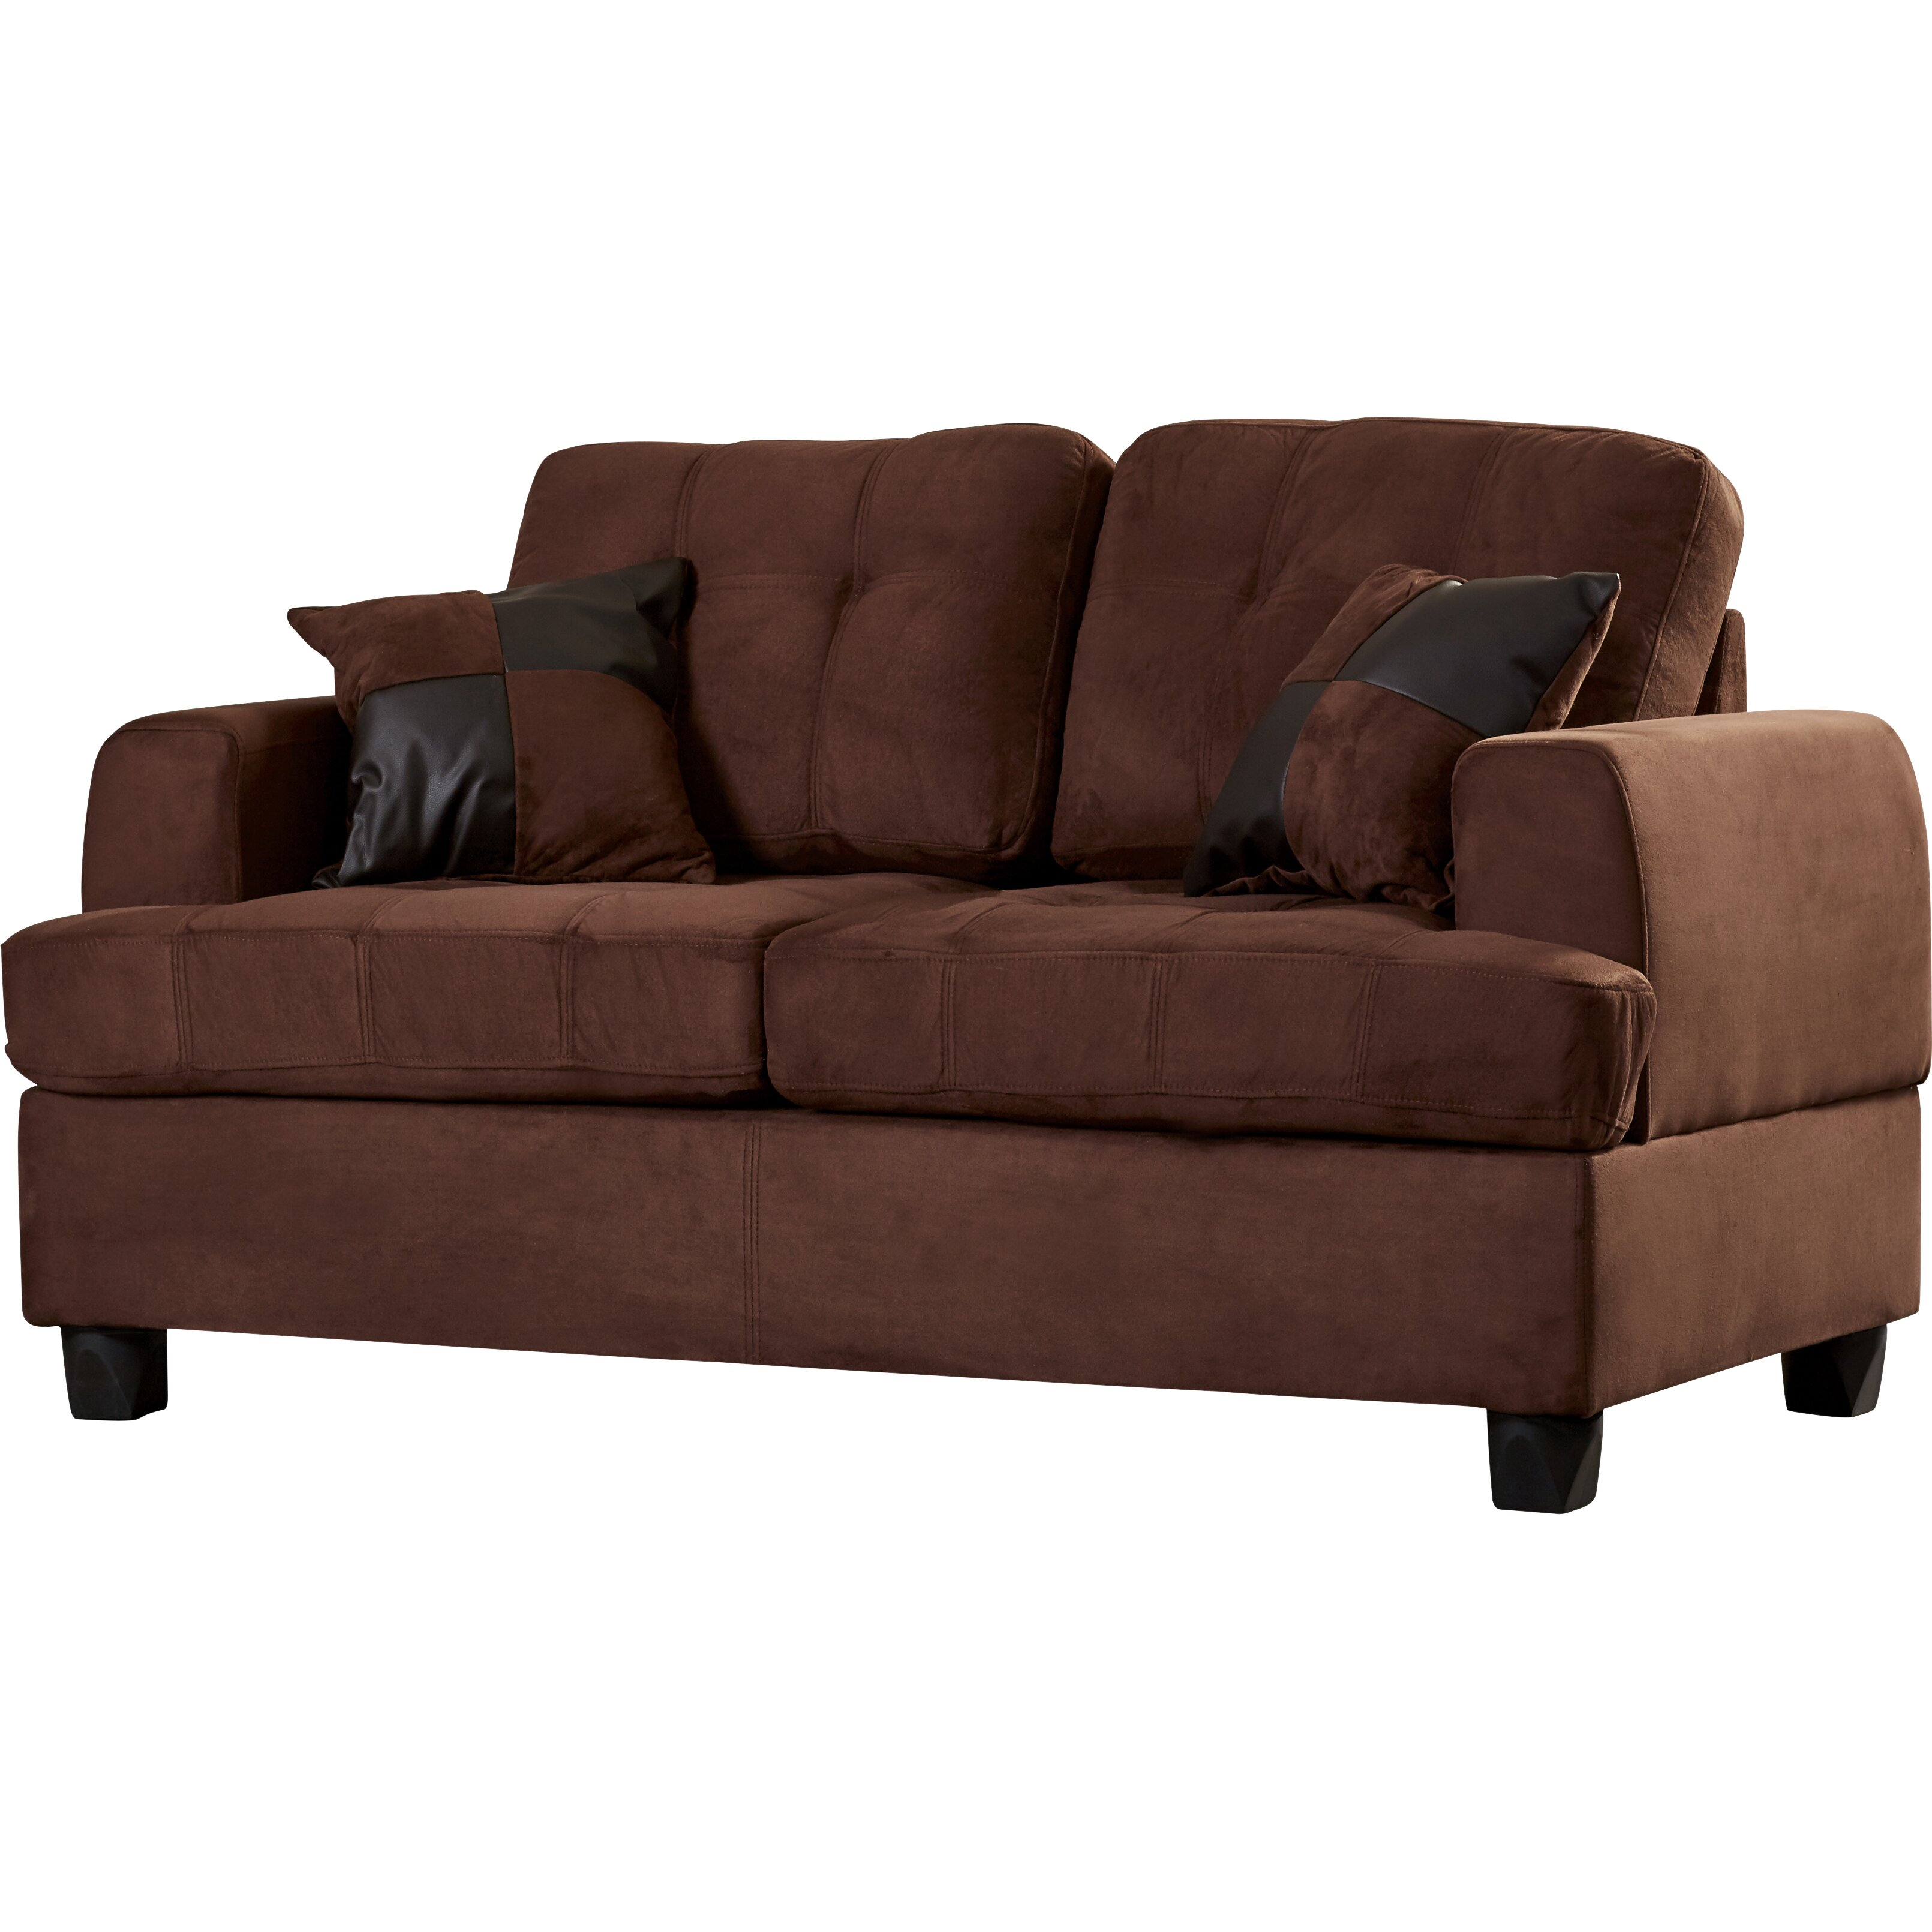 Andover mills birchview sofa and loveseat set reviews for Sofa loveseat and chair set